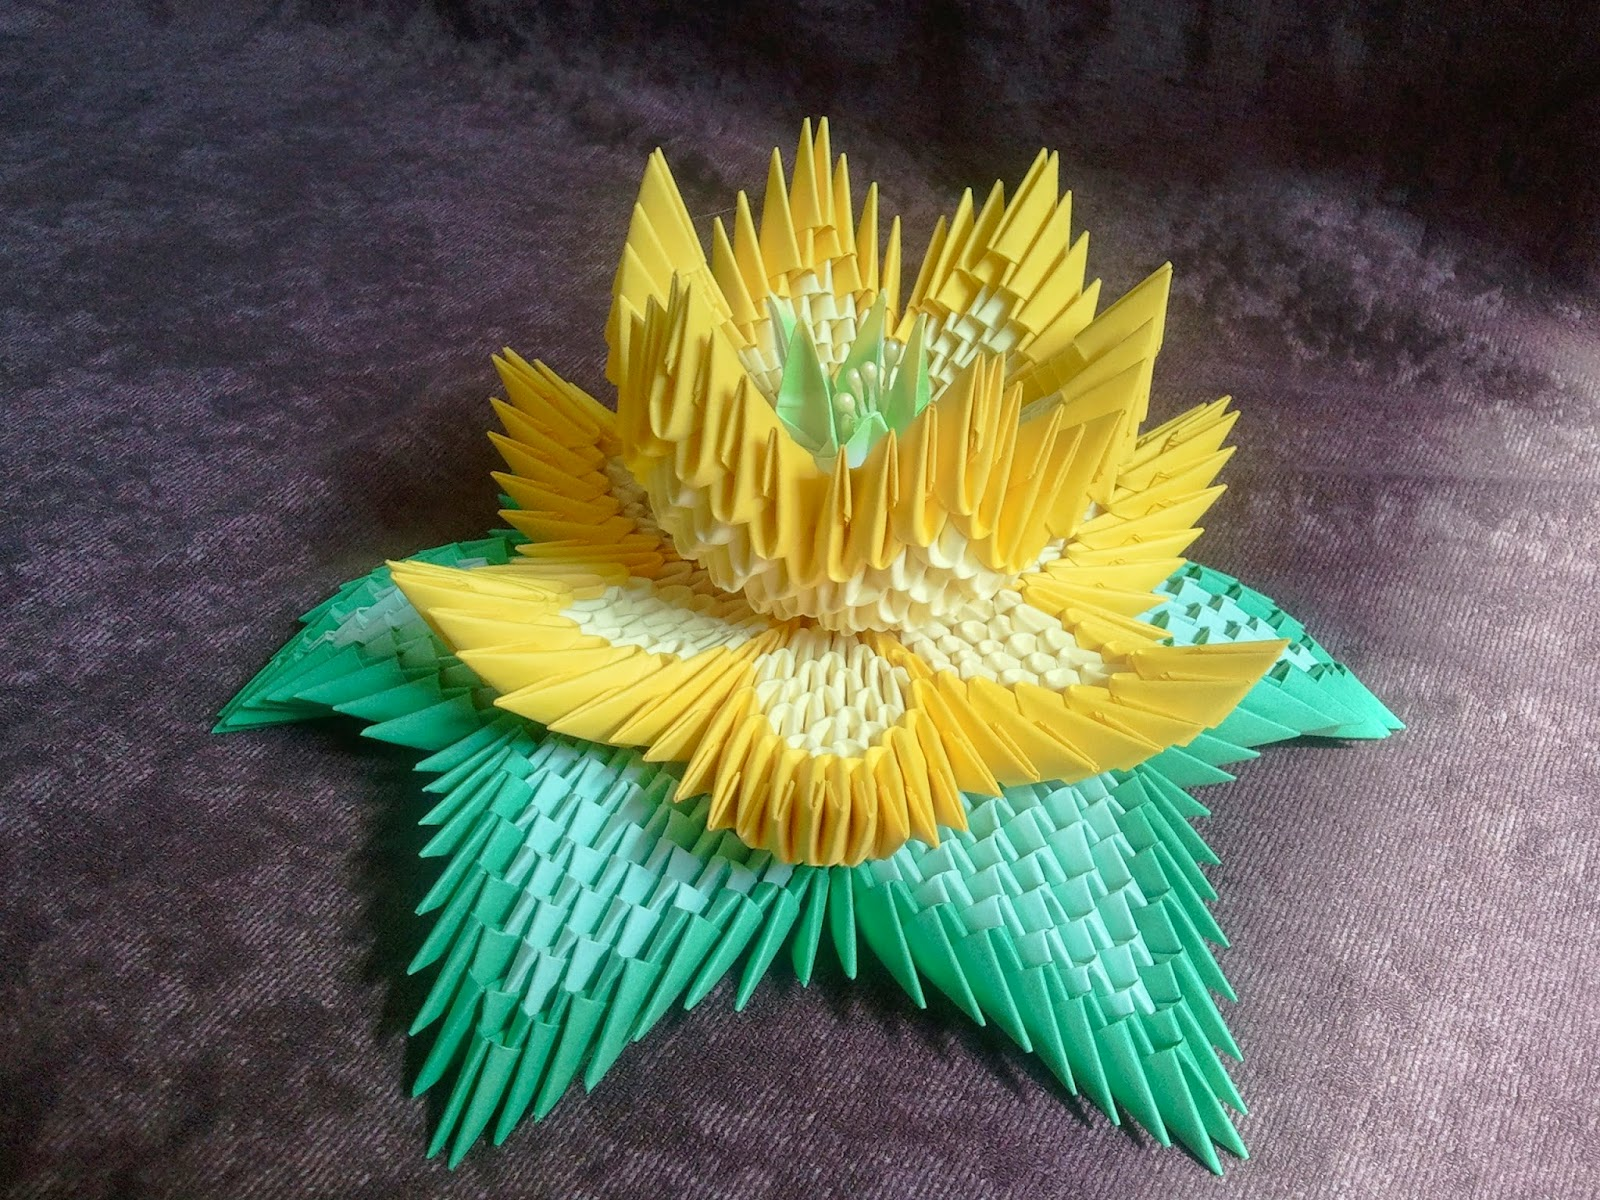 How To Make An Origami Lotus Flower - Folding Instructions ...   1200x1600